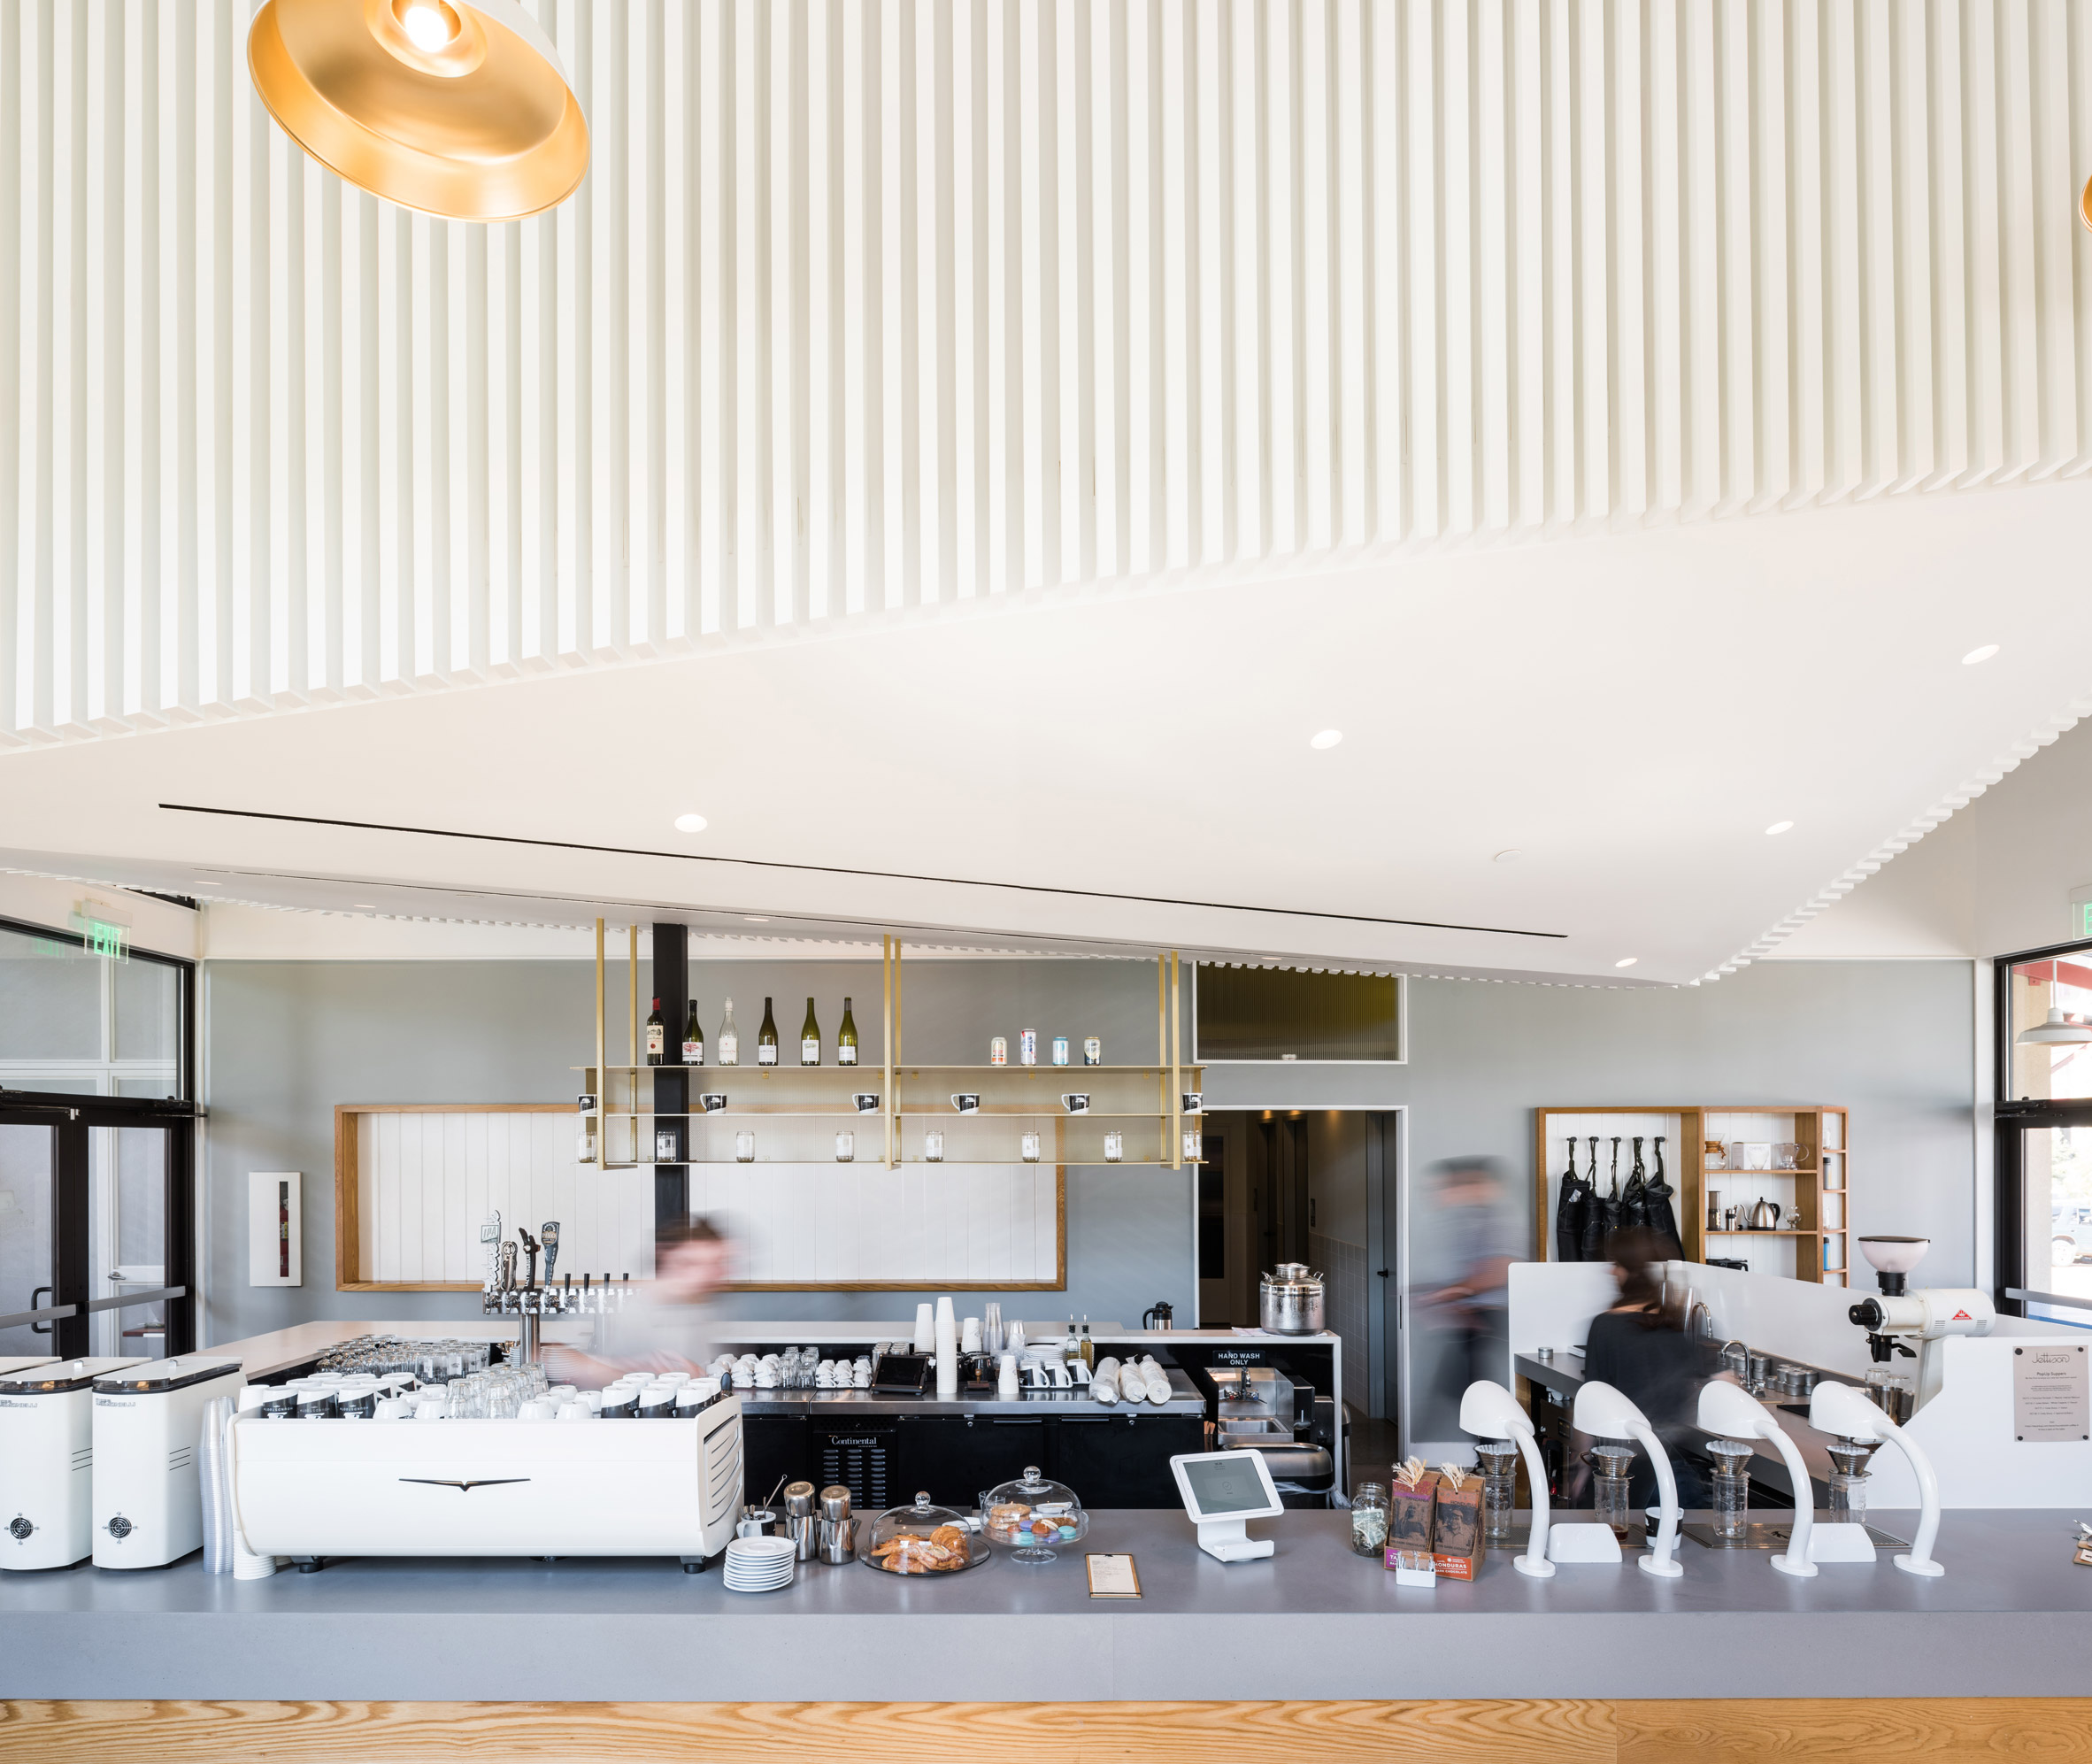 houndstooth-coffee-and-jettison-cocktail-bar-official-sylvan-thirty-texas-usa_dezeen_2364_col_6